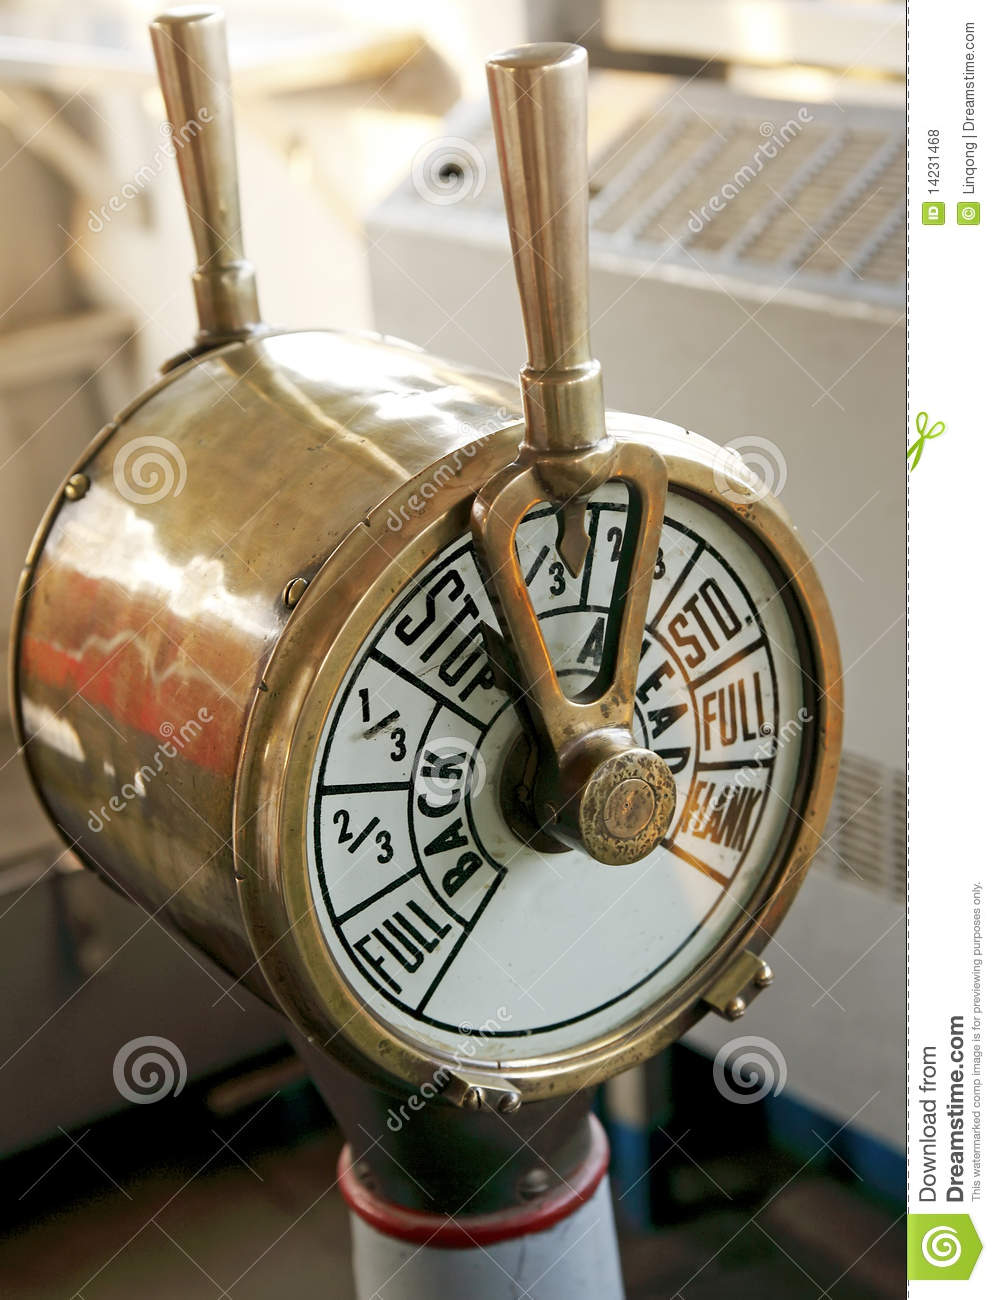 Engine Room Telegraph: Ship Engine Telegraph Stock Photo. Image Of History